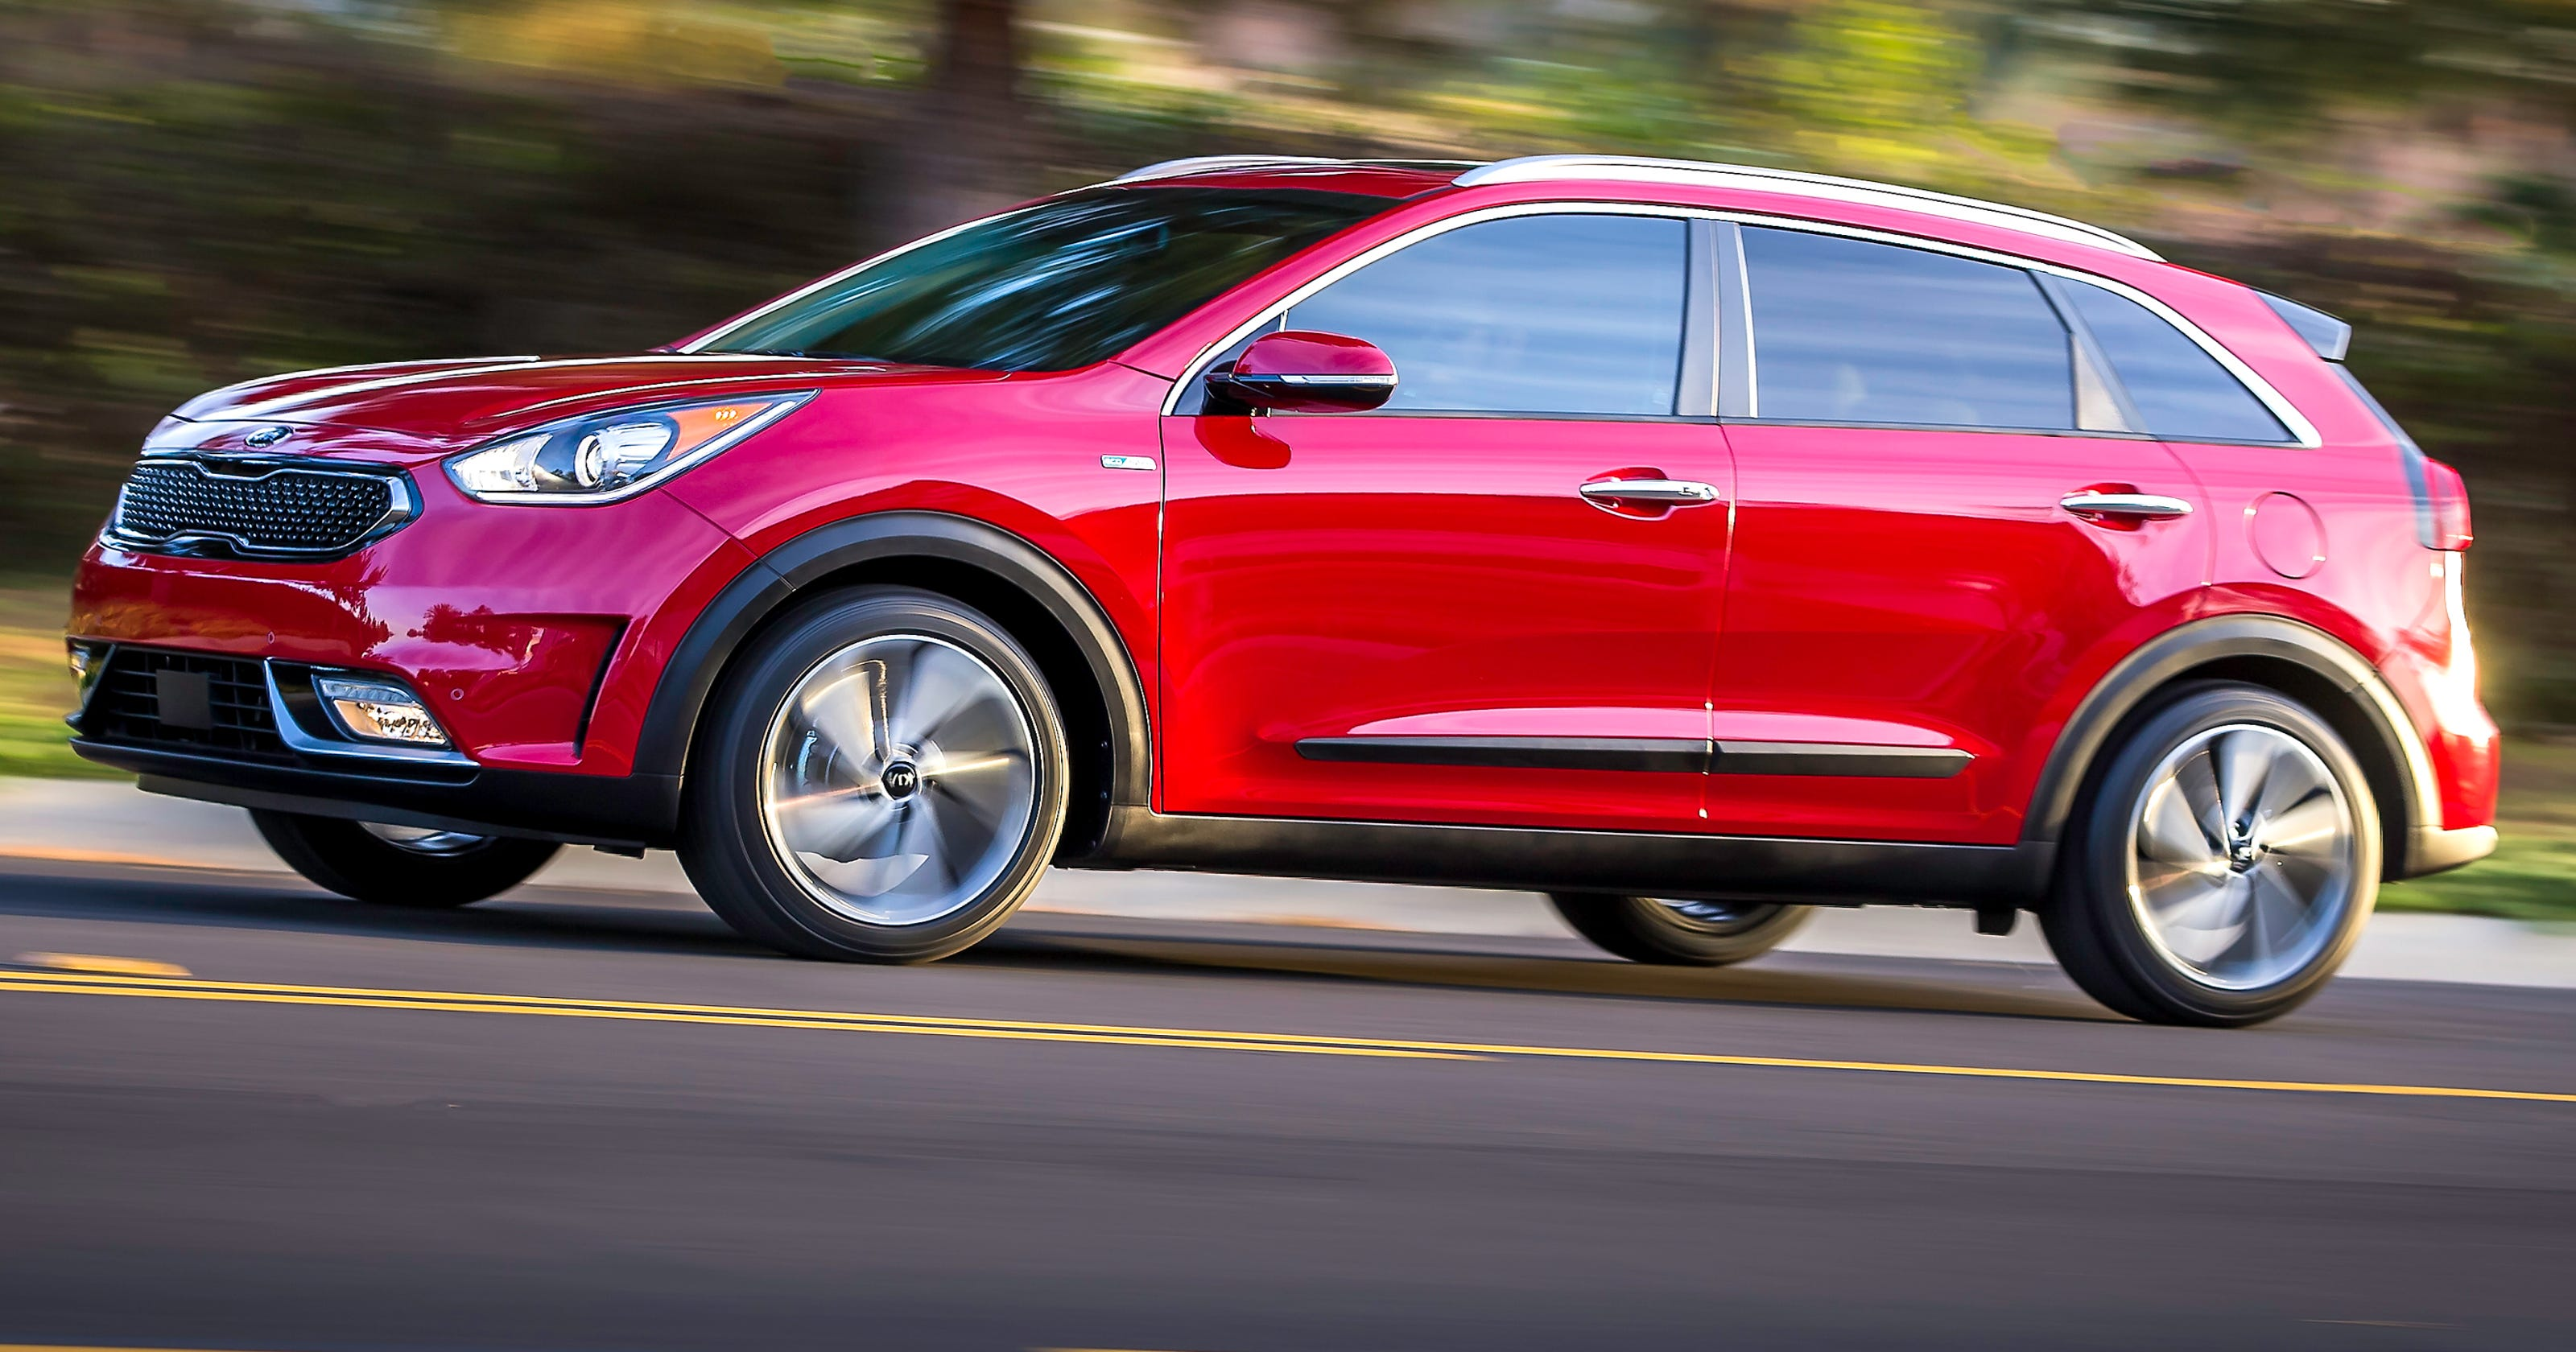 kia niro small hybrid suv gets prius like gas mileage. Black Bedroom Furniture Sets. Home Design Ideas